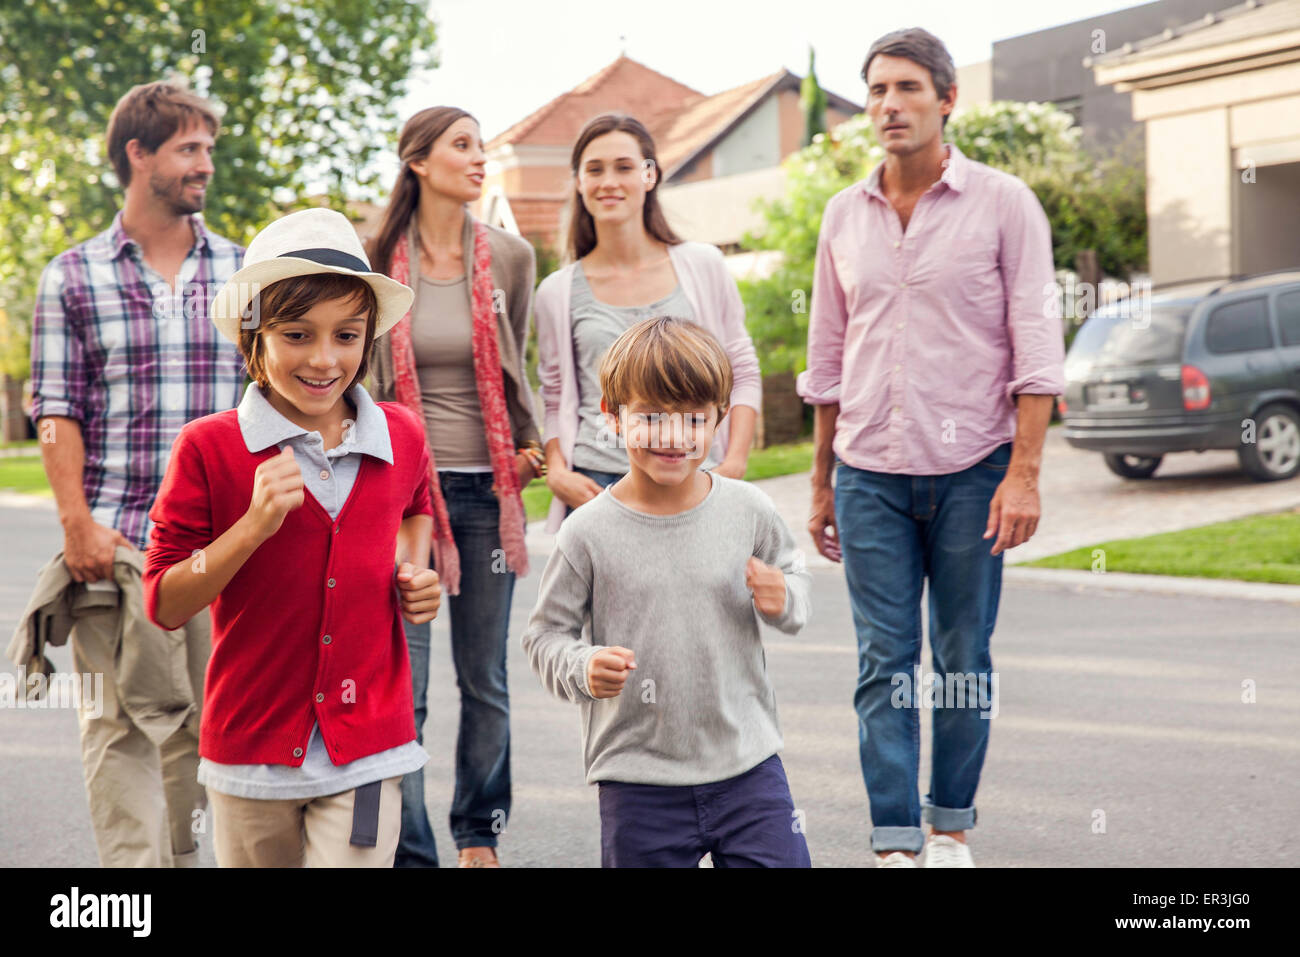 Family walking together through suburban neighborhood - Stock Image